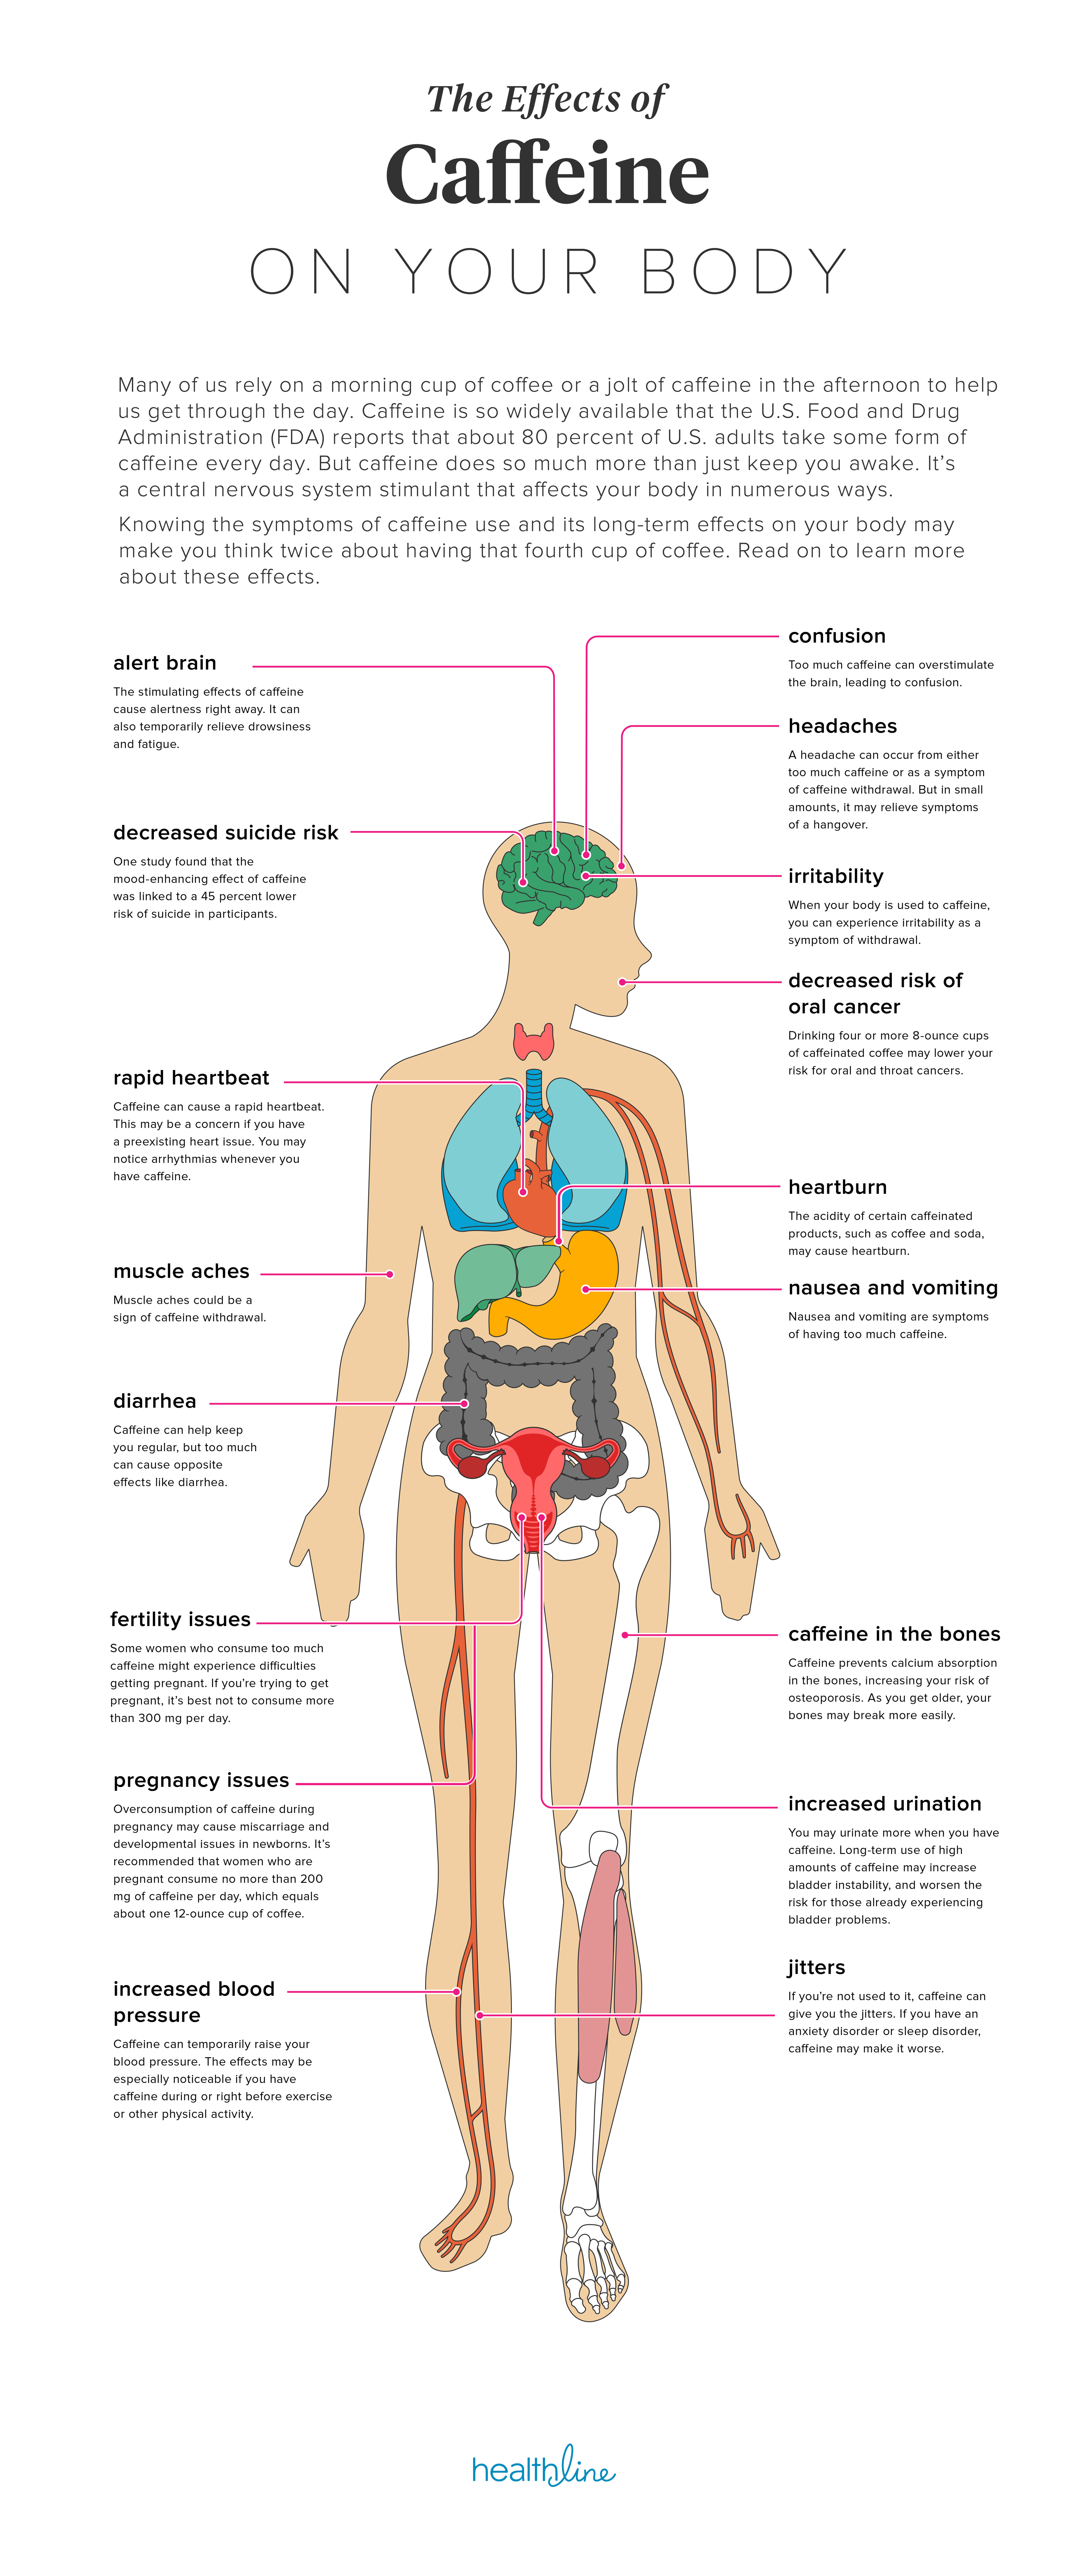 The Effects Of Caffeine On Your Body